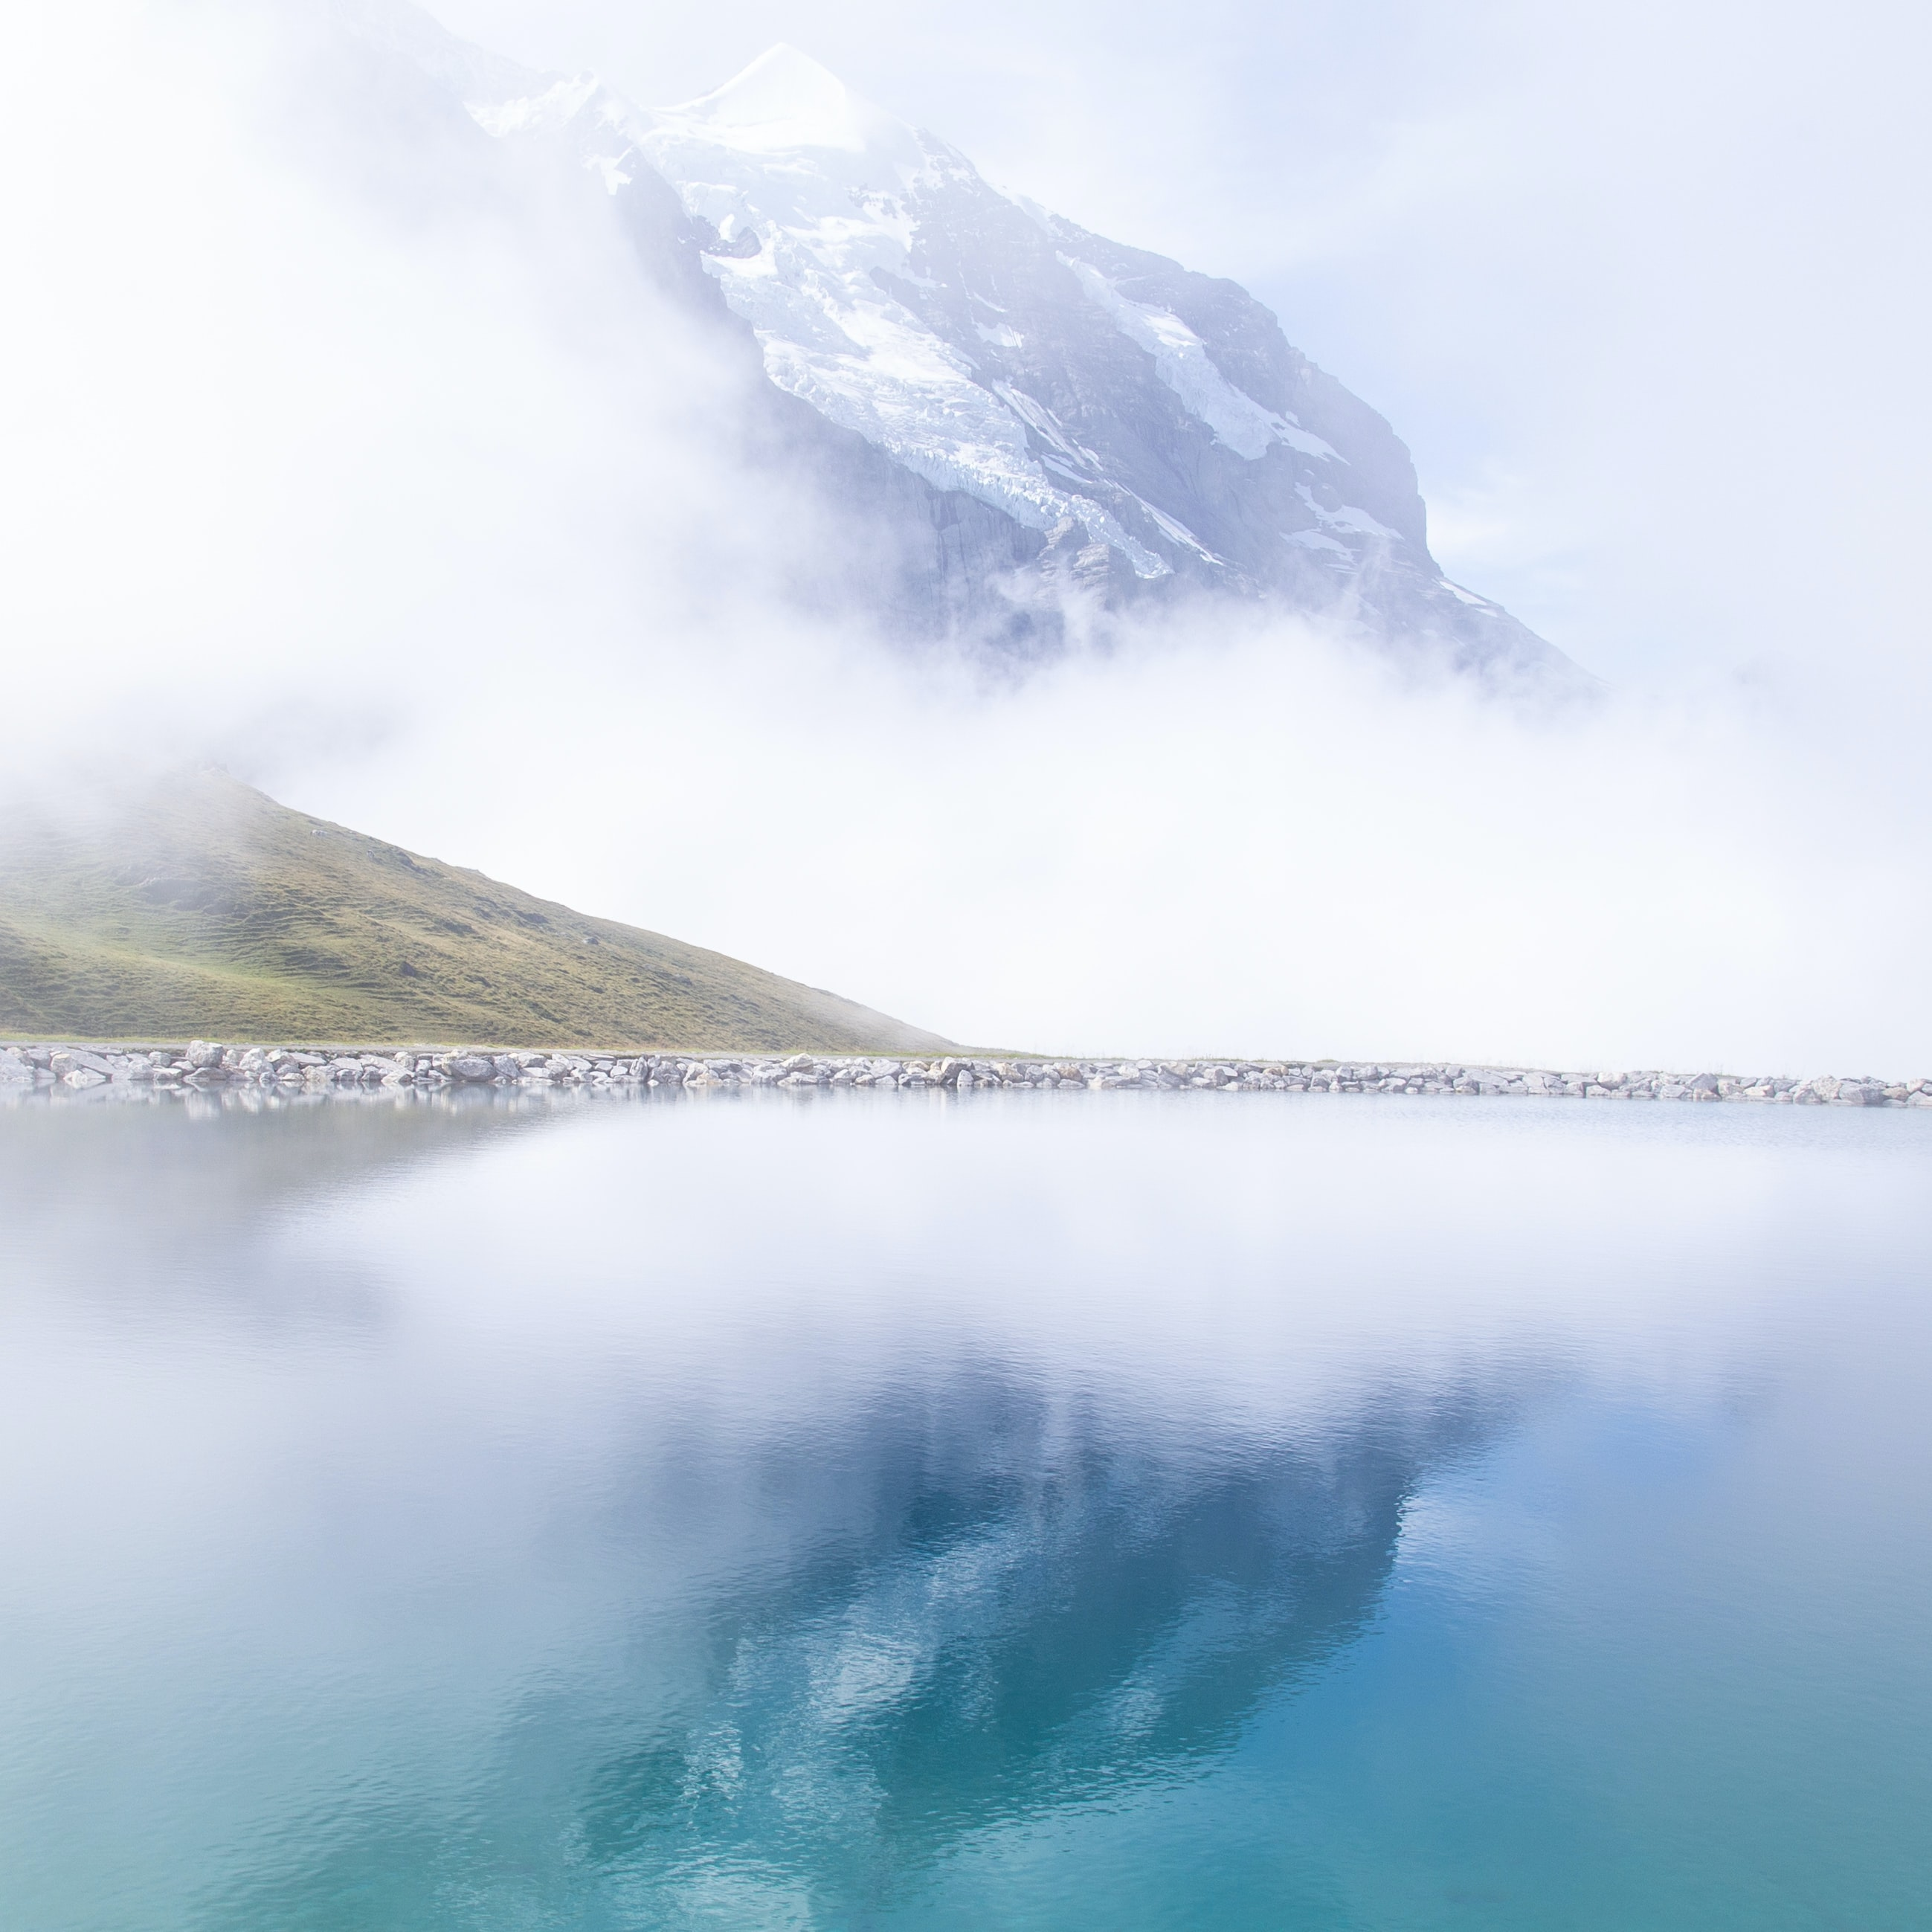 photography of glacier mountain with water reflection